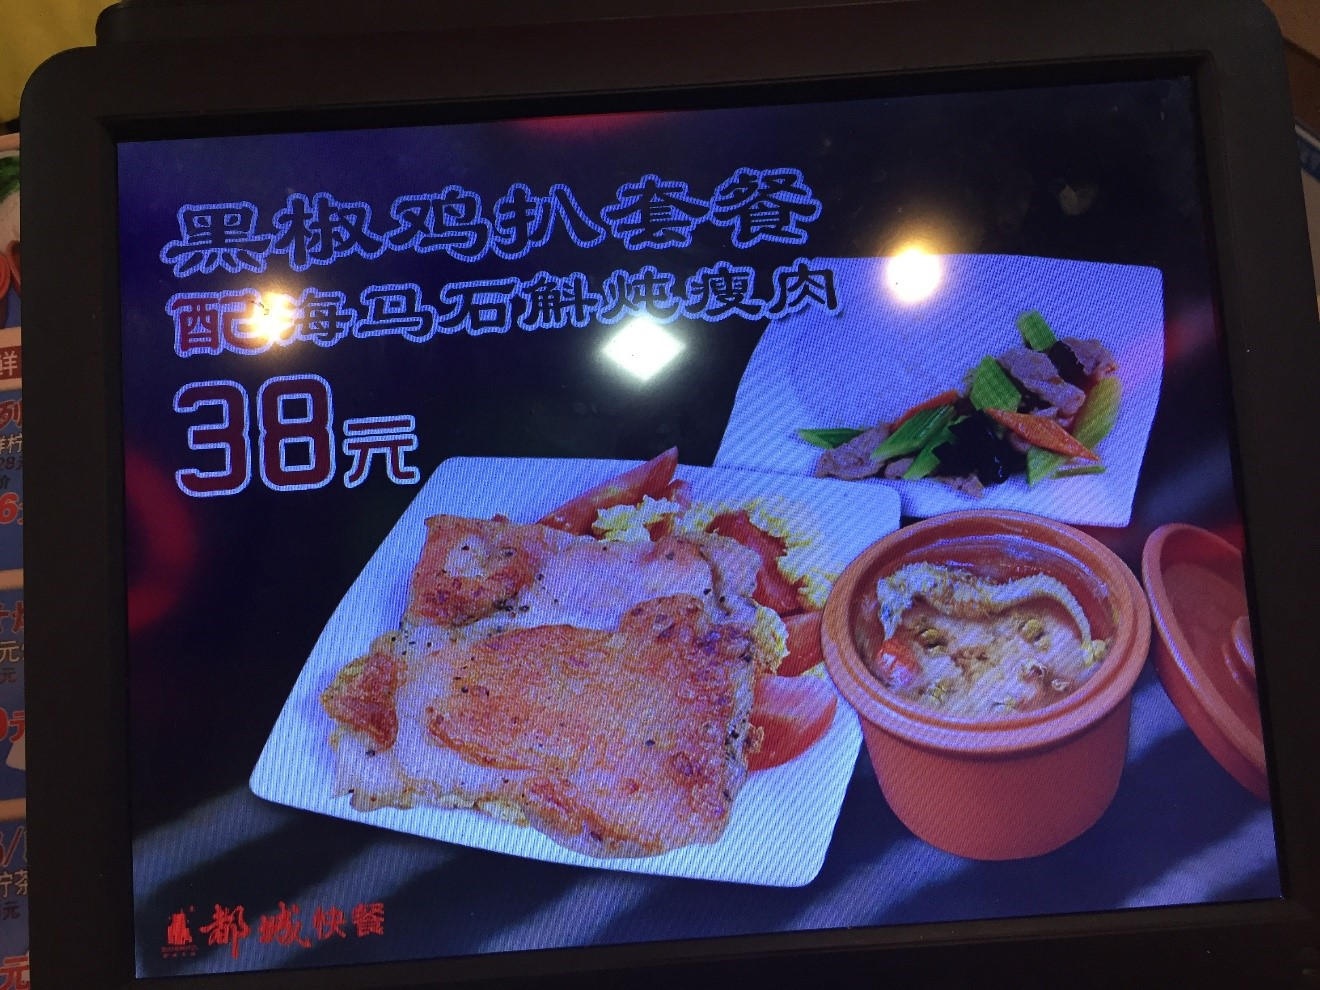 Ad for seahorse-soup with two other dishes, taken in the Urban Fast Food restaurant (都城快餐) in Guangzhou, China